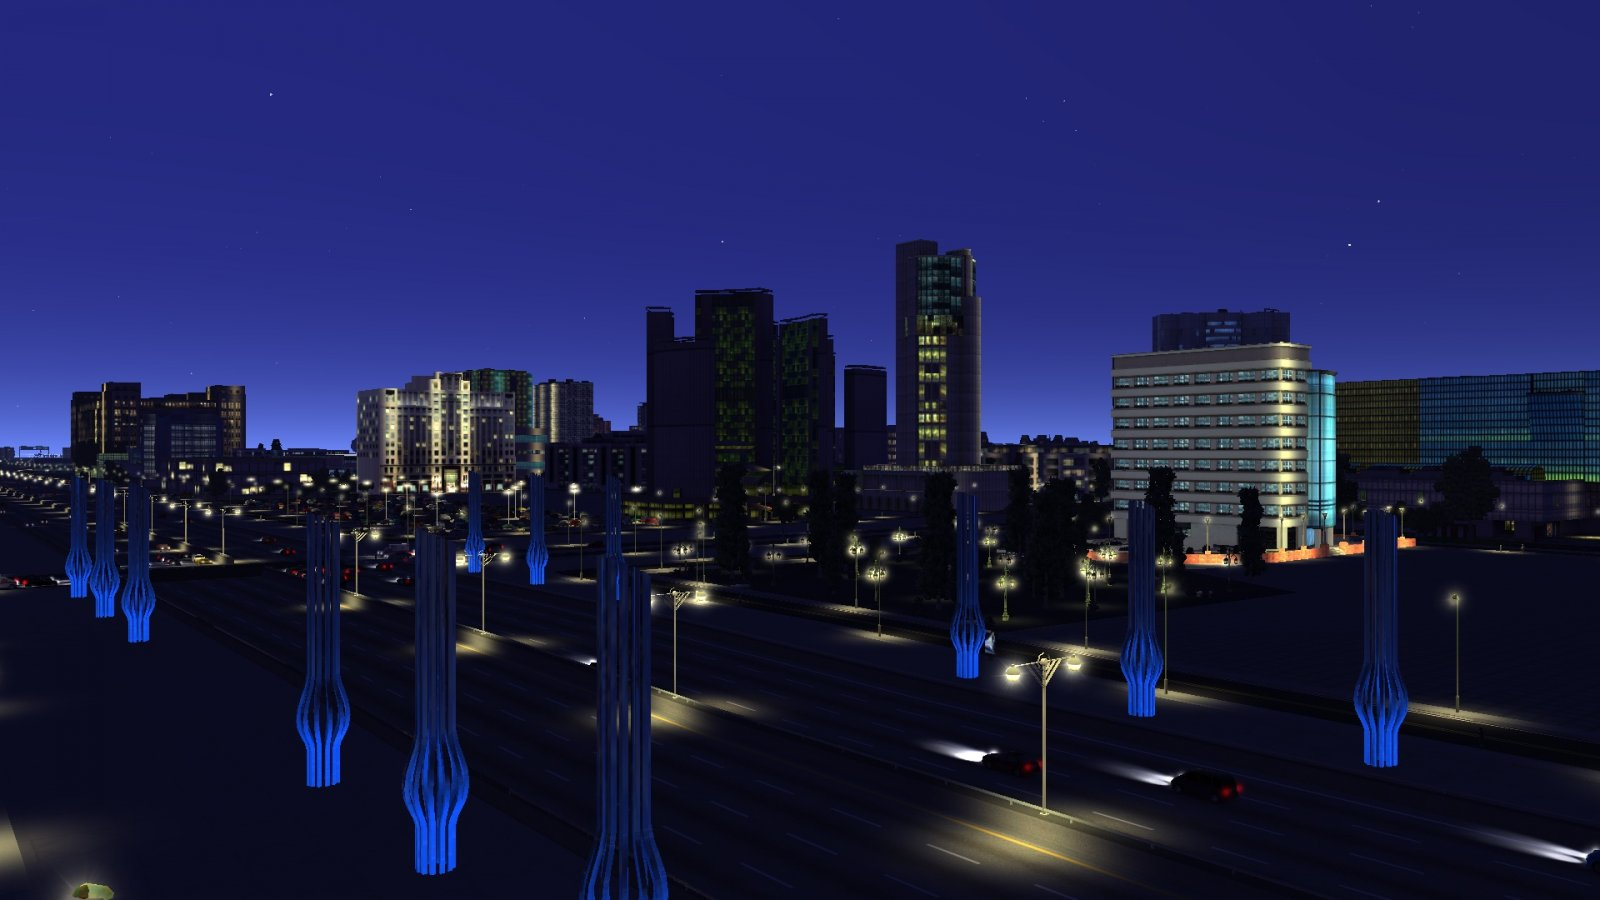 cxl_screenshot_la defense_29.jpg